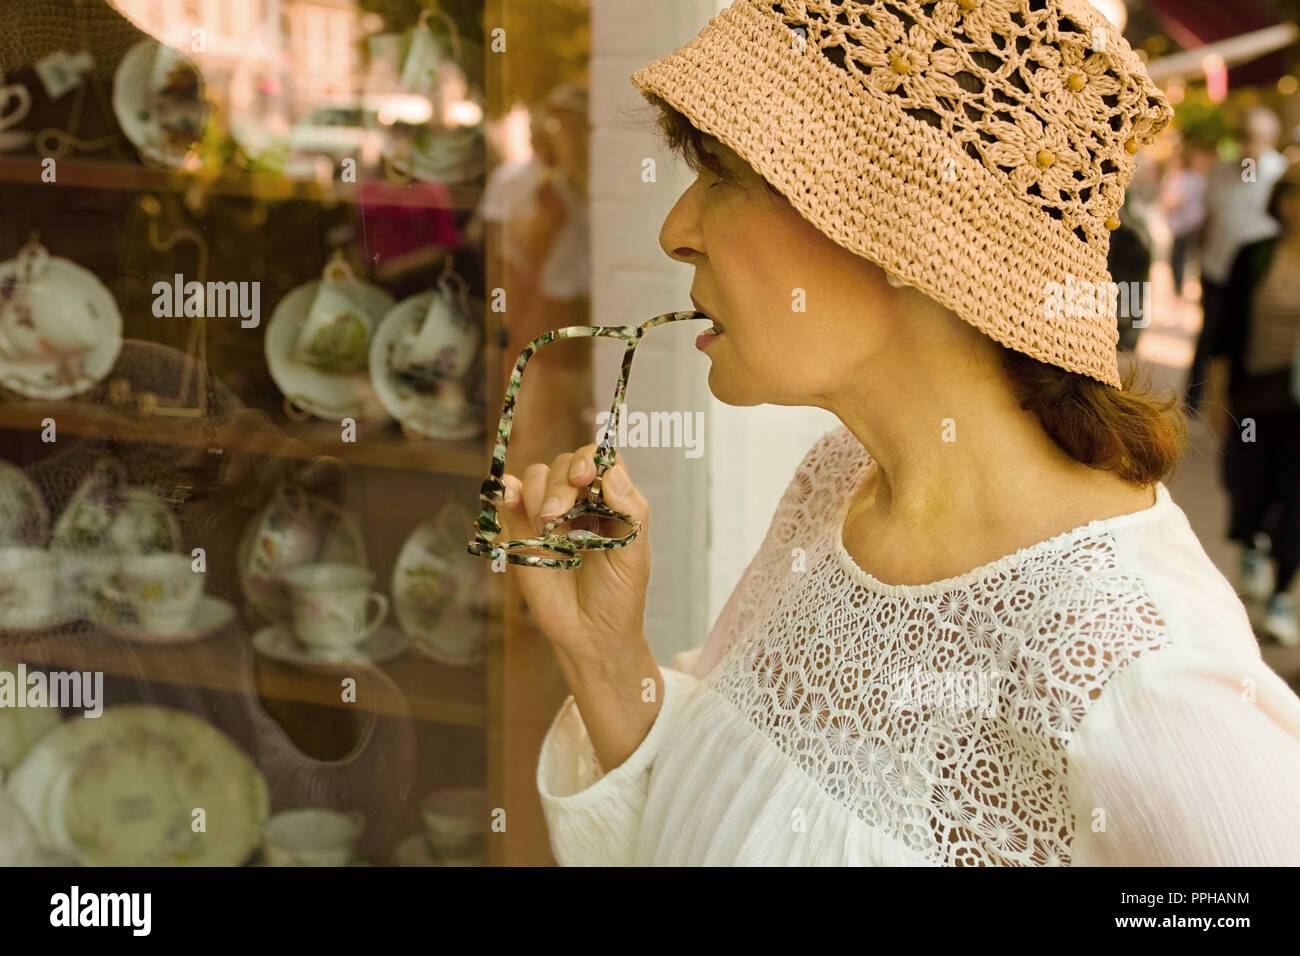 A mature woman gazing at a table decoration shopwindow. - Stock Image